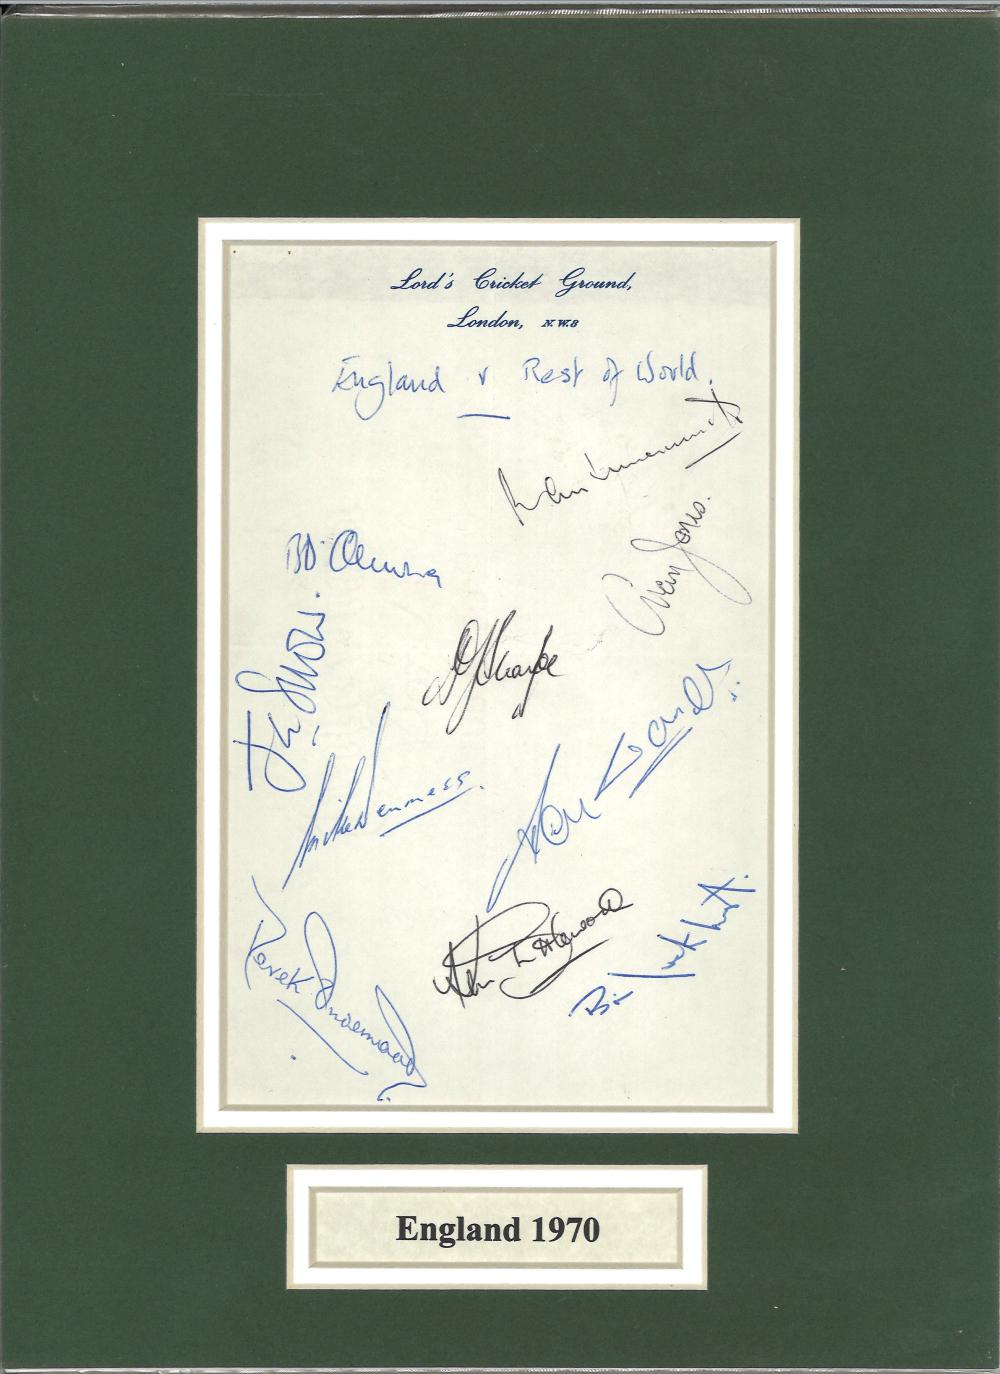 England 1970 cricket signed by 10. Amongst the signtures are B.L. D'Oliveira, Shuttleworth, Clark,